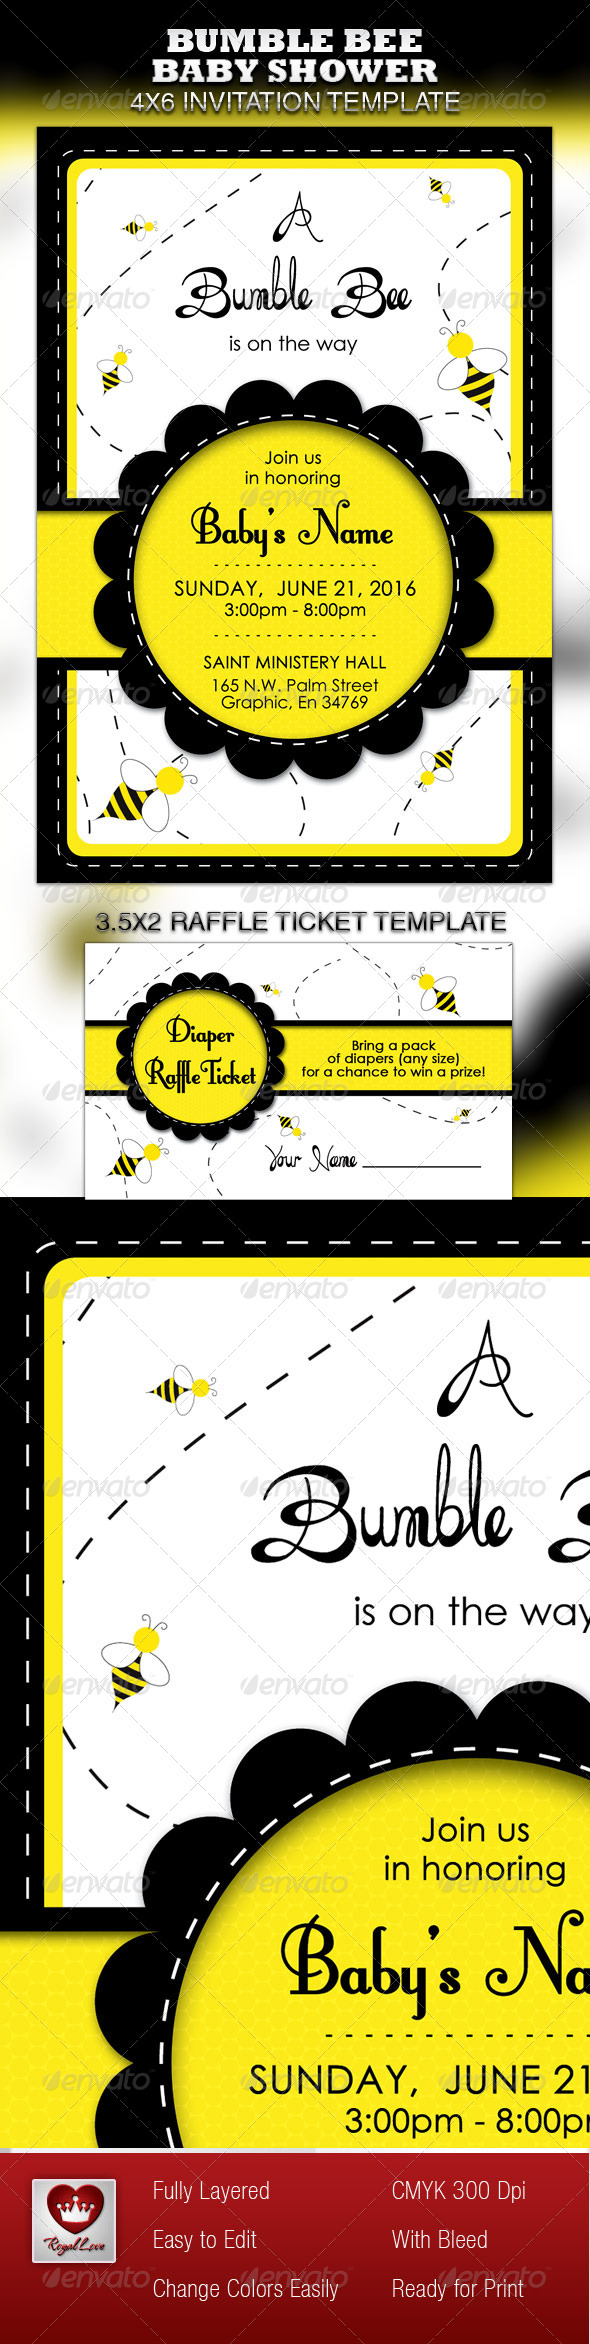 GraphicRiver Bumble Bee Baby Shower Invitation & Raffle Ticket 4115557